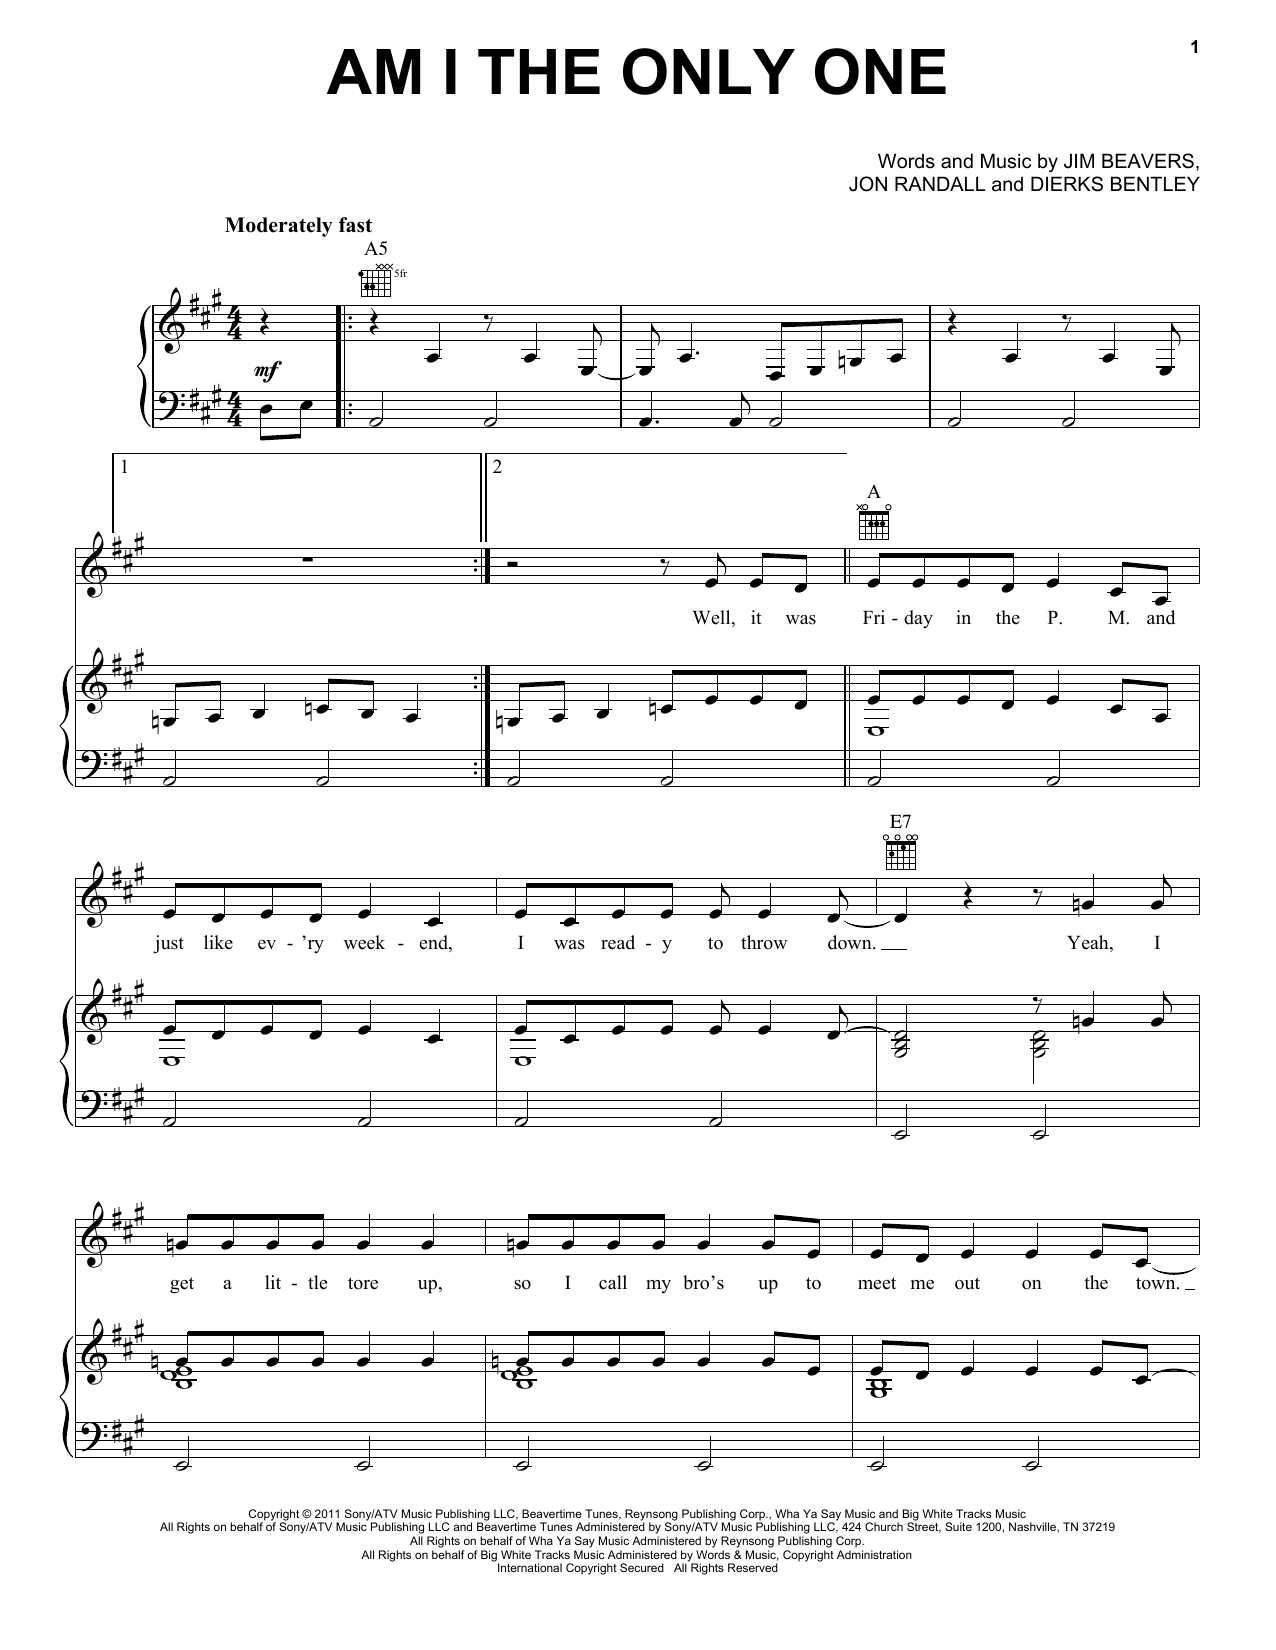 Dierks Bentley Am I The Only One Sheet Music Pdf Notes Chords Pop Score Piano Vocal Guitar Right Hand Melody Download Printable Sku 85996